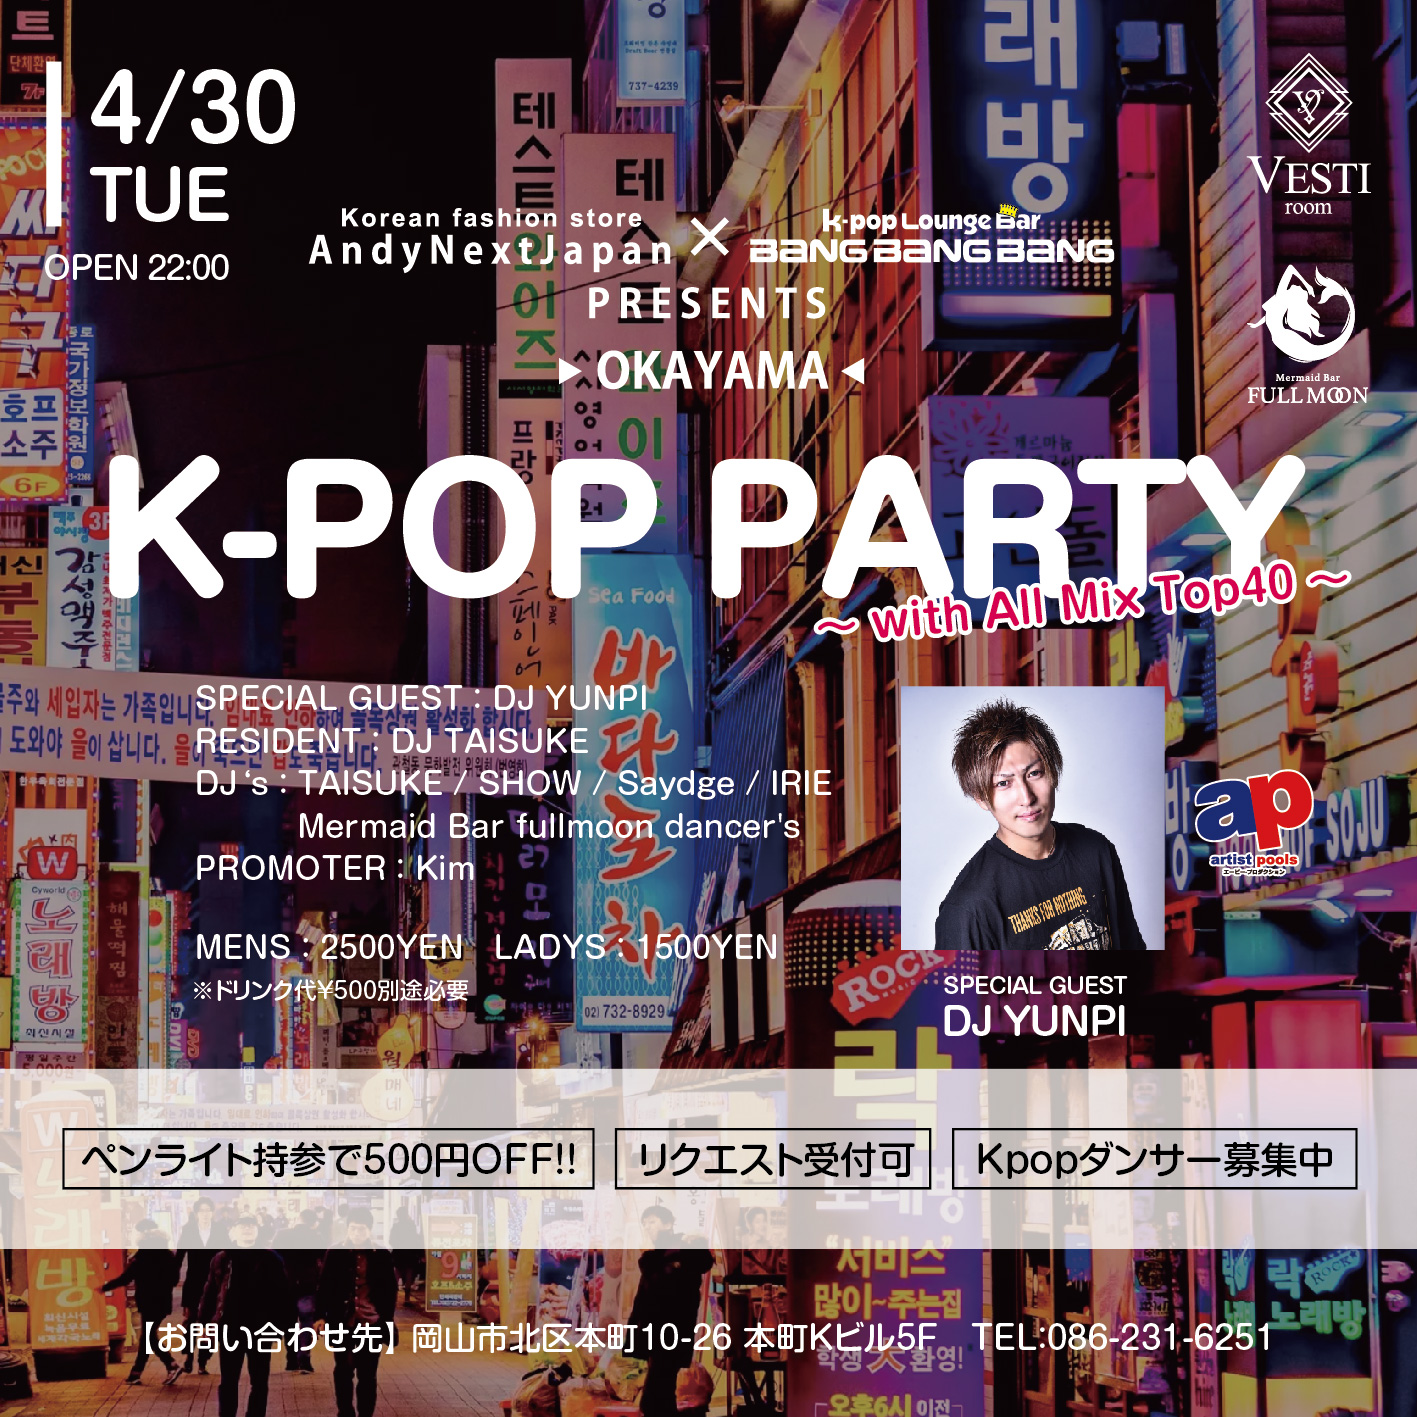 K-POP OARTY~Night Version with All Mix~